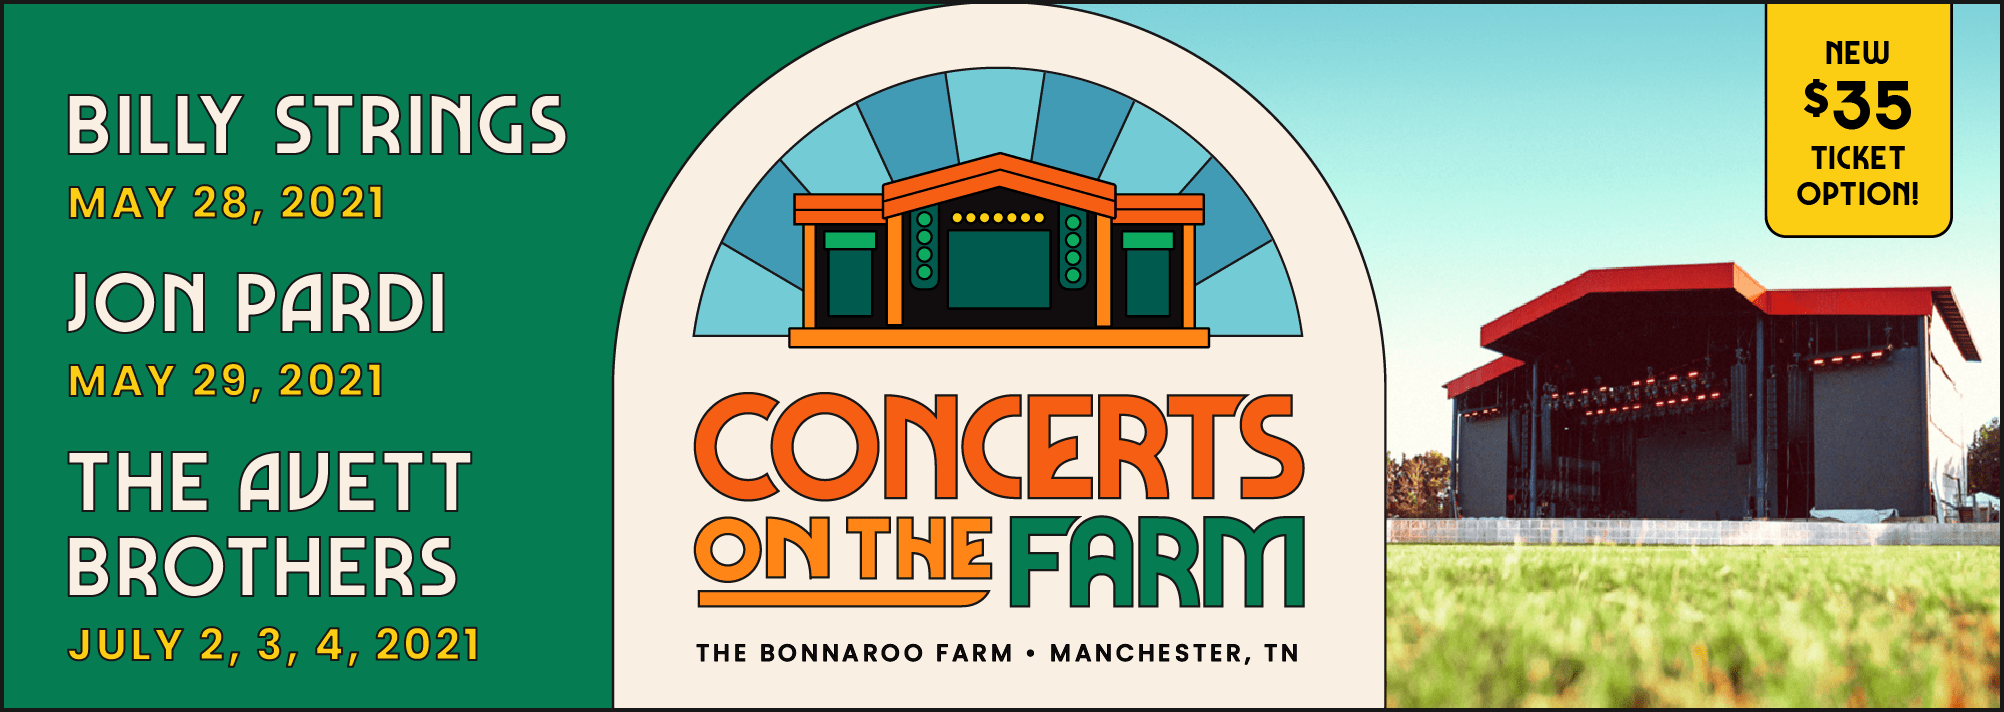 concerts-on-the-farm